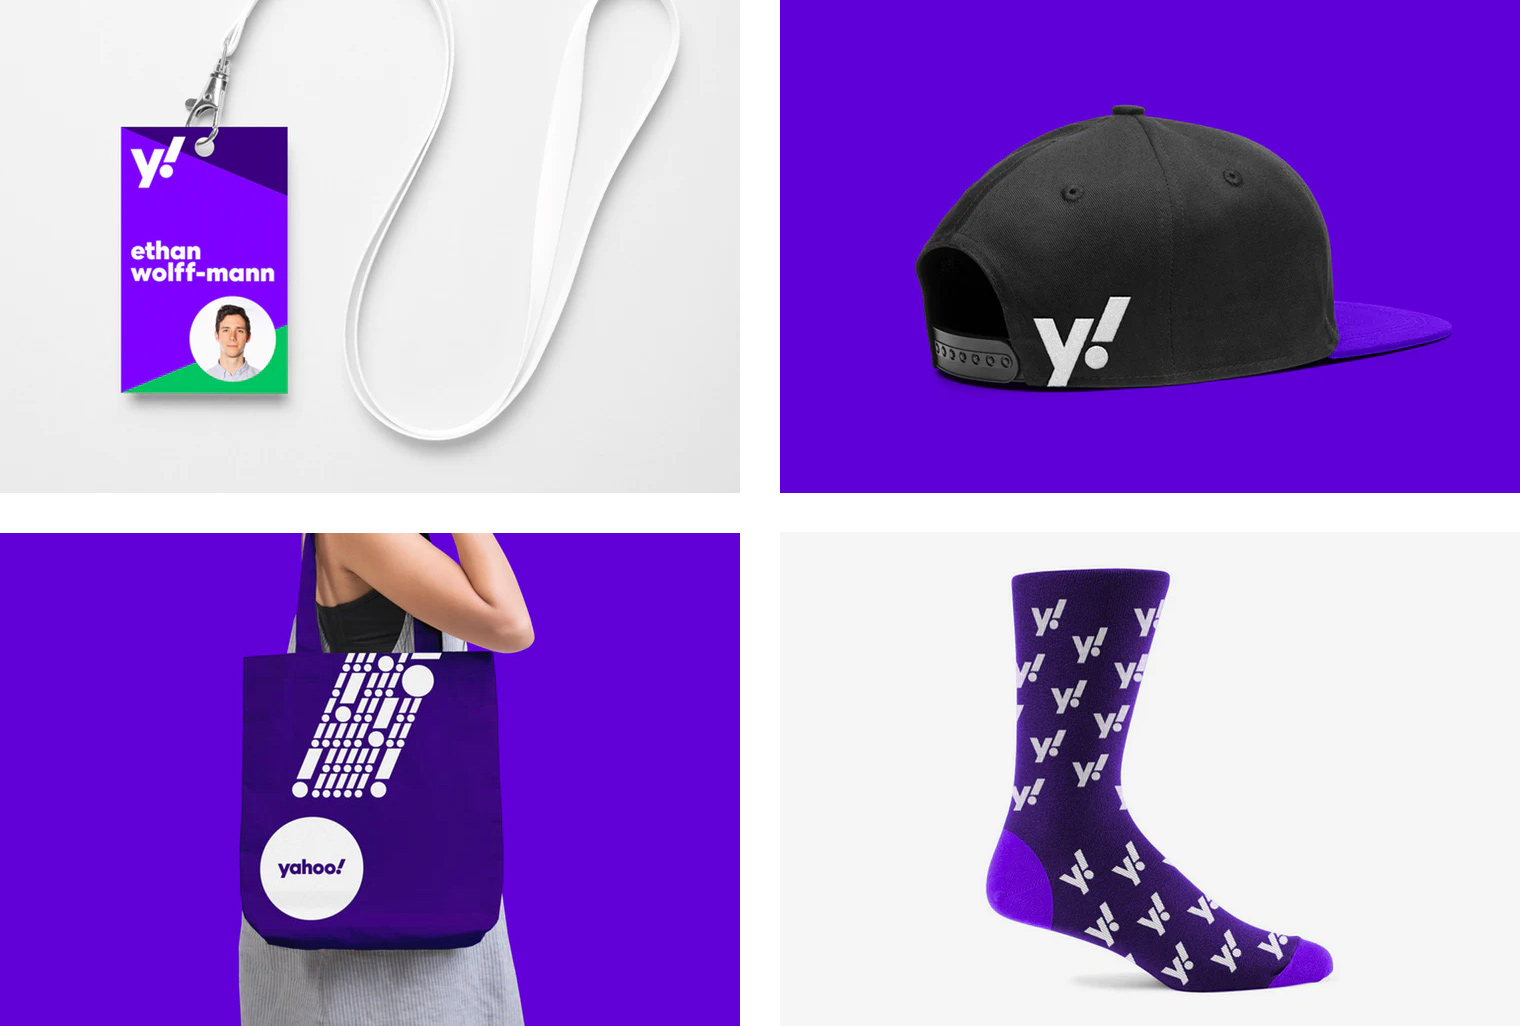 New Logo and Identity for Yahoo! by Pentagram